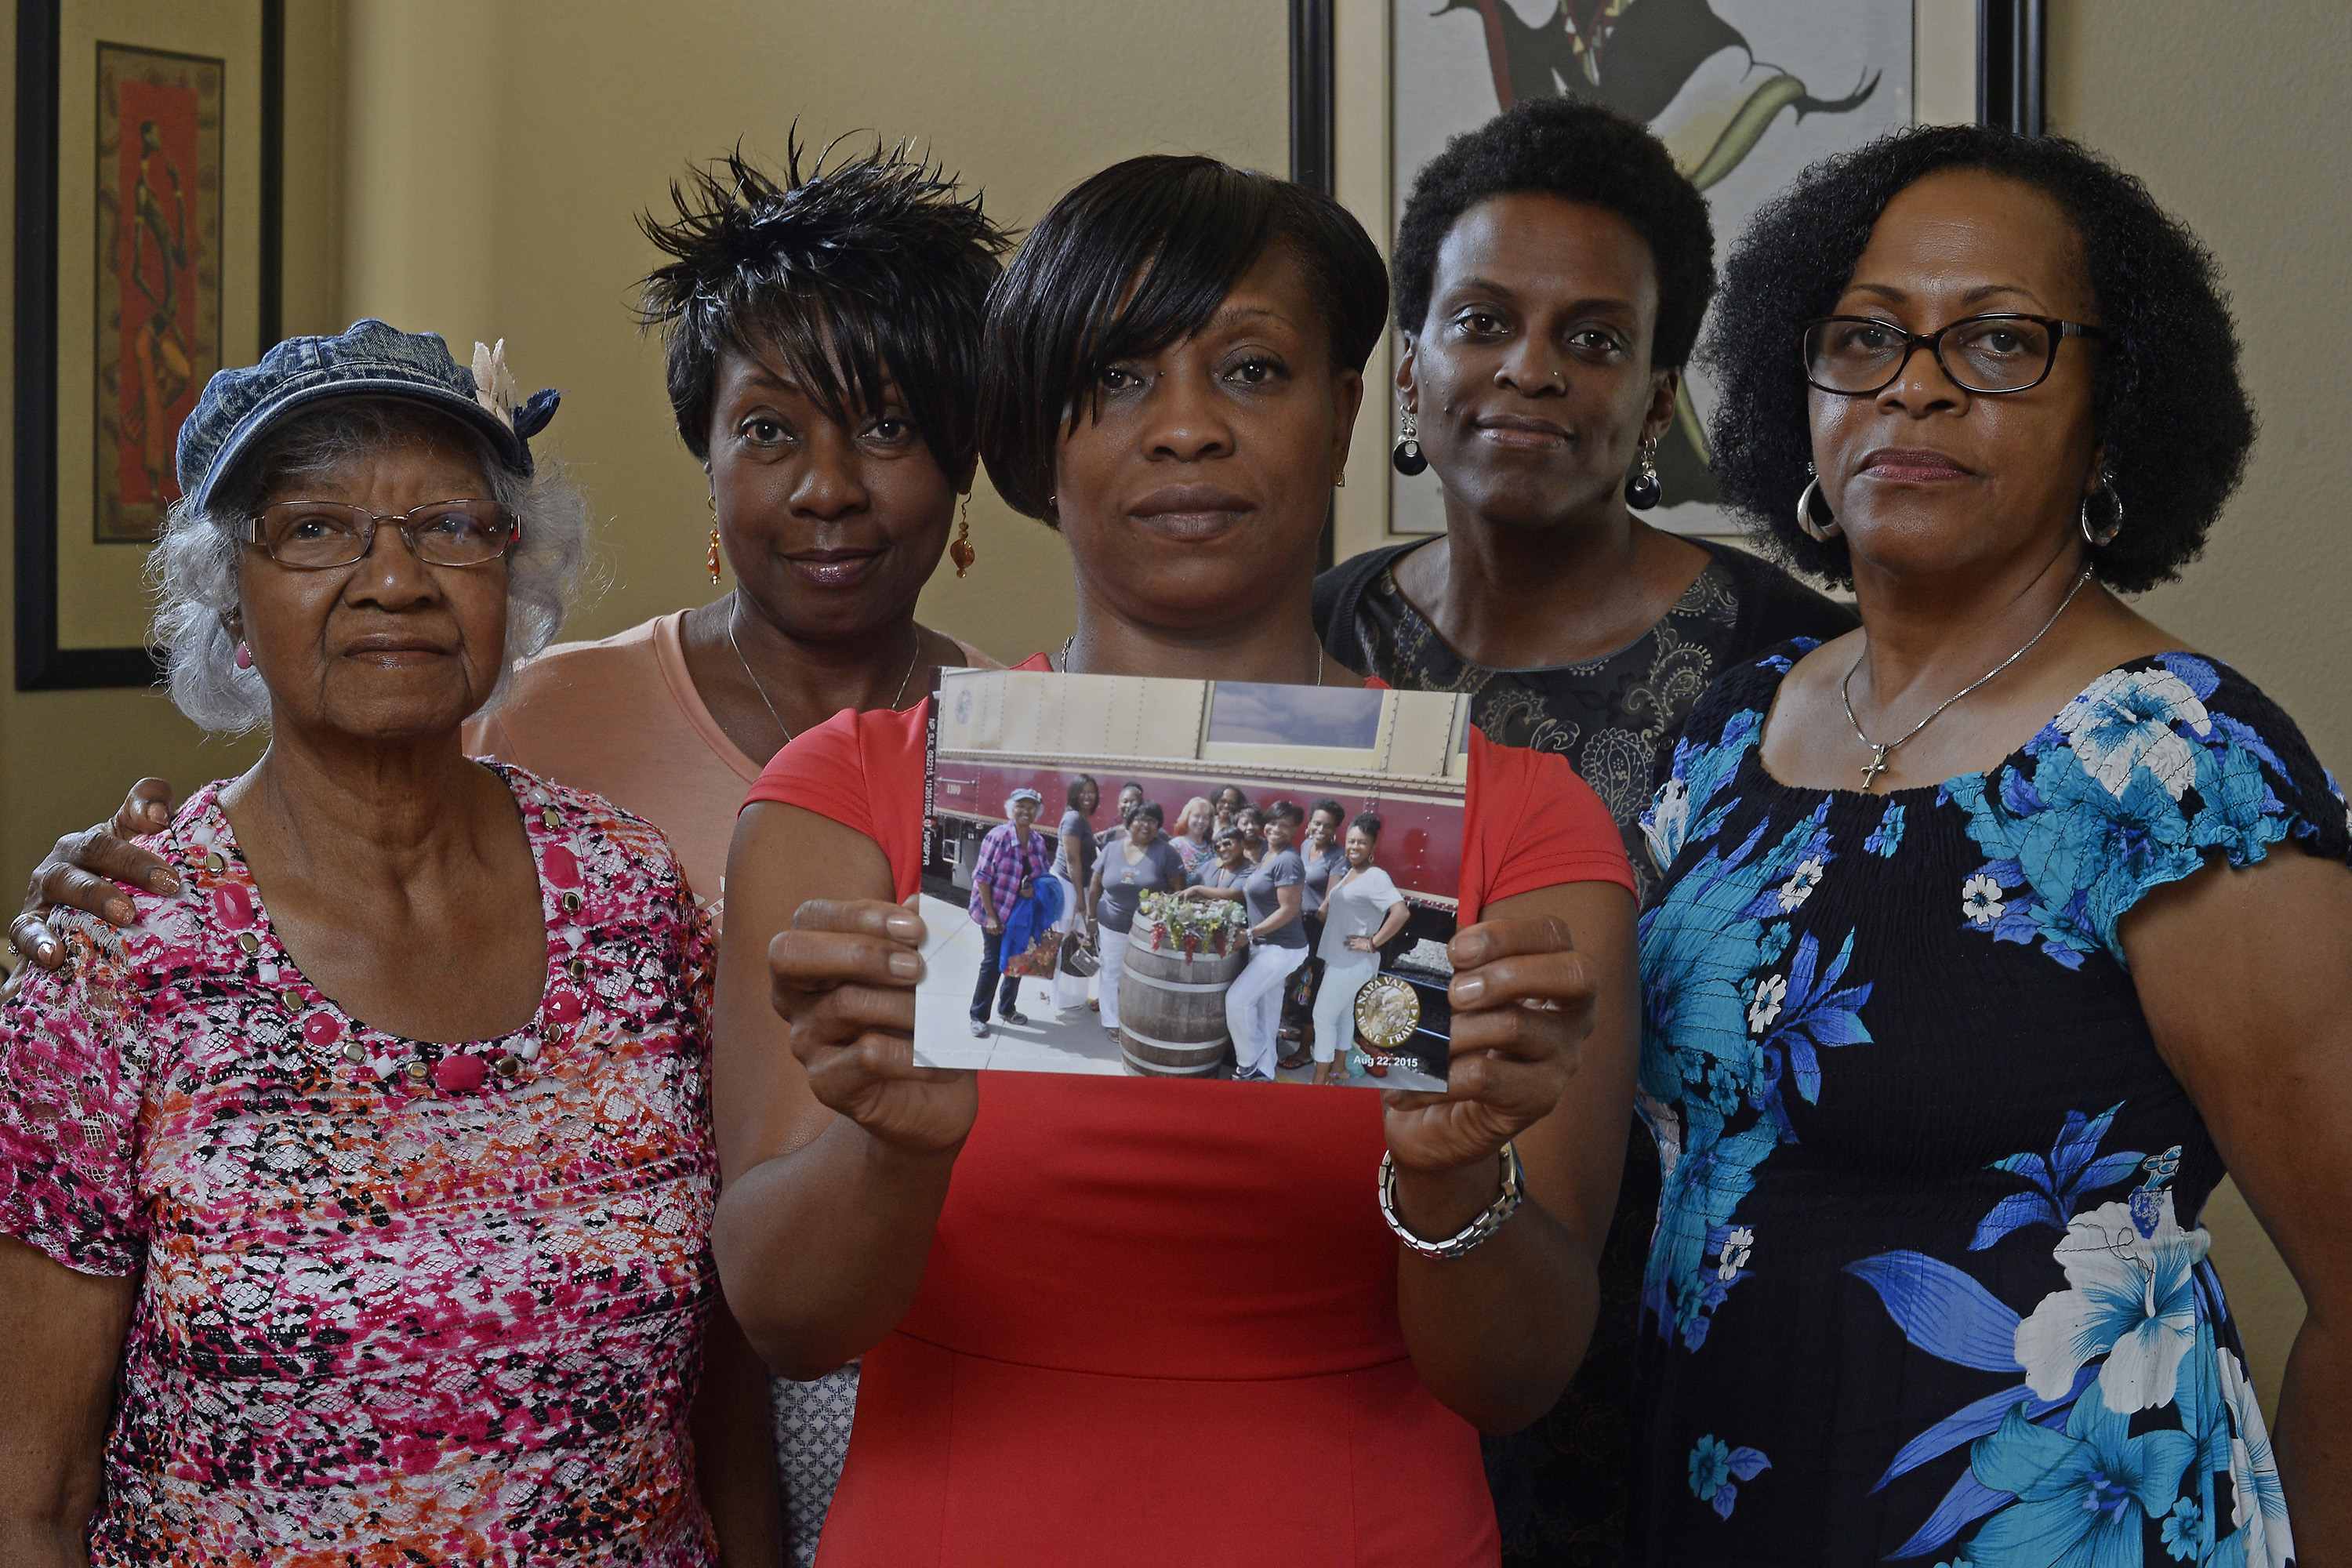 Five members of the Sistahs on the Reading Edge book club stand together in Antioch on Aug. 24, 2015.